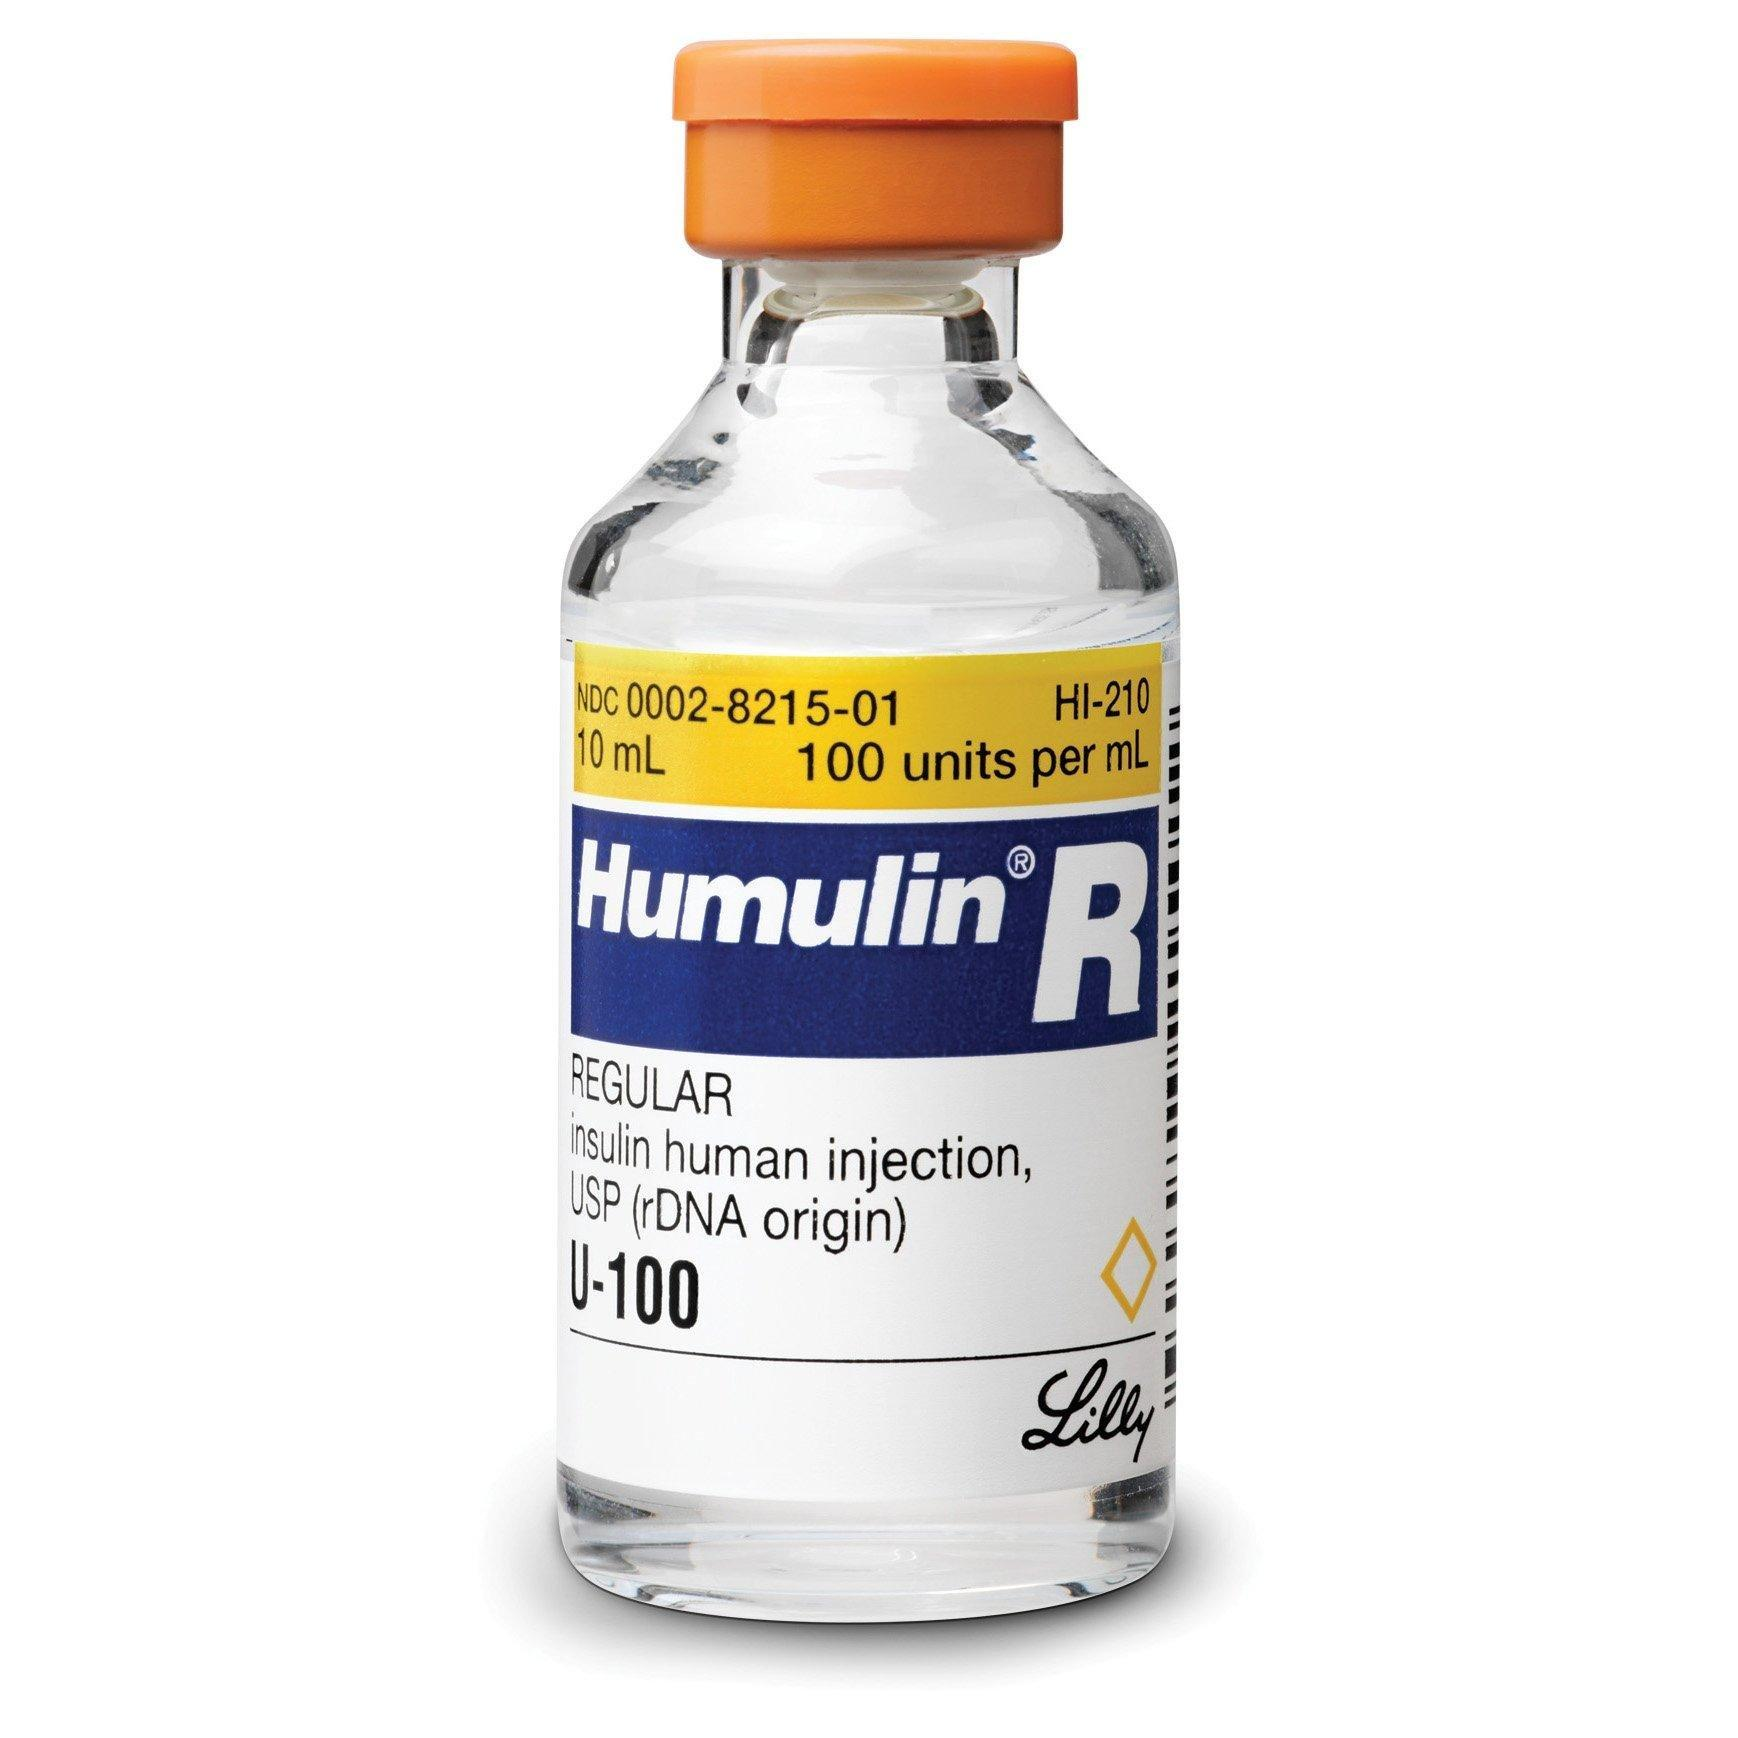 Buy Humulin R Online On The Best Steroid Site. We Accept Credit Cards.